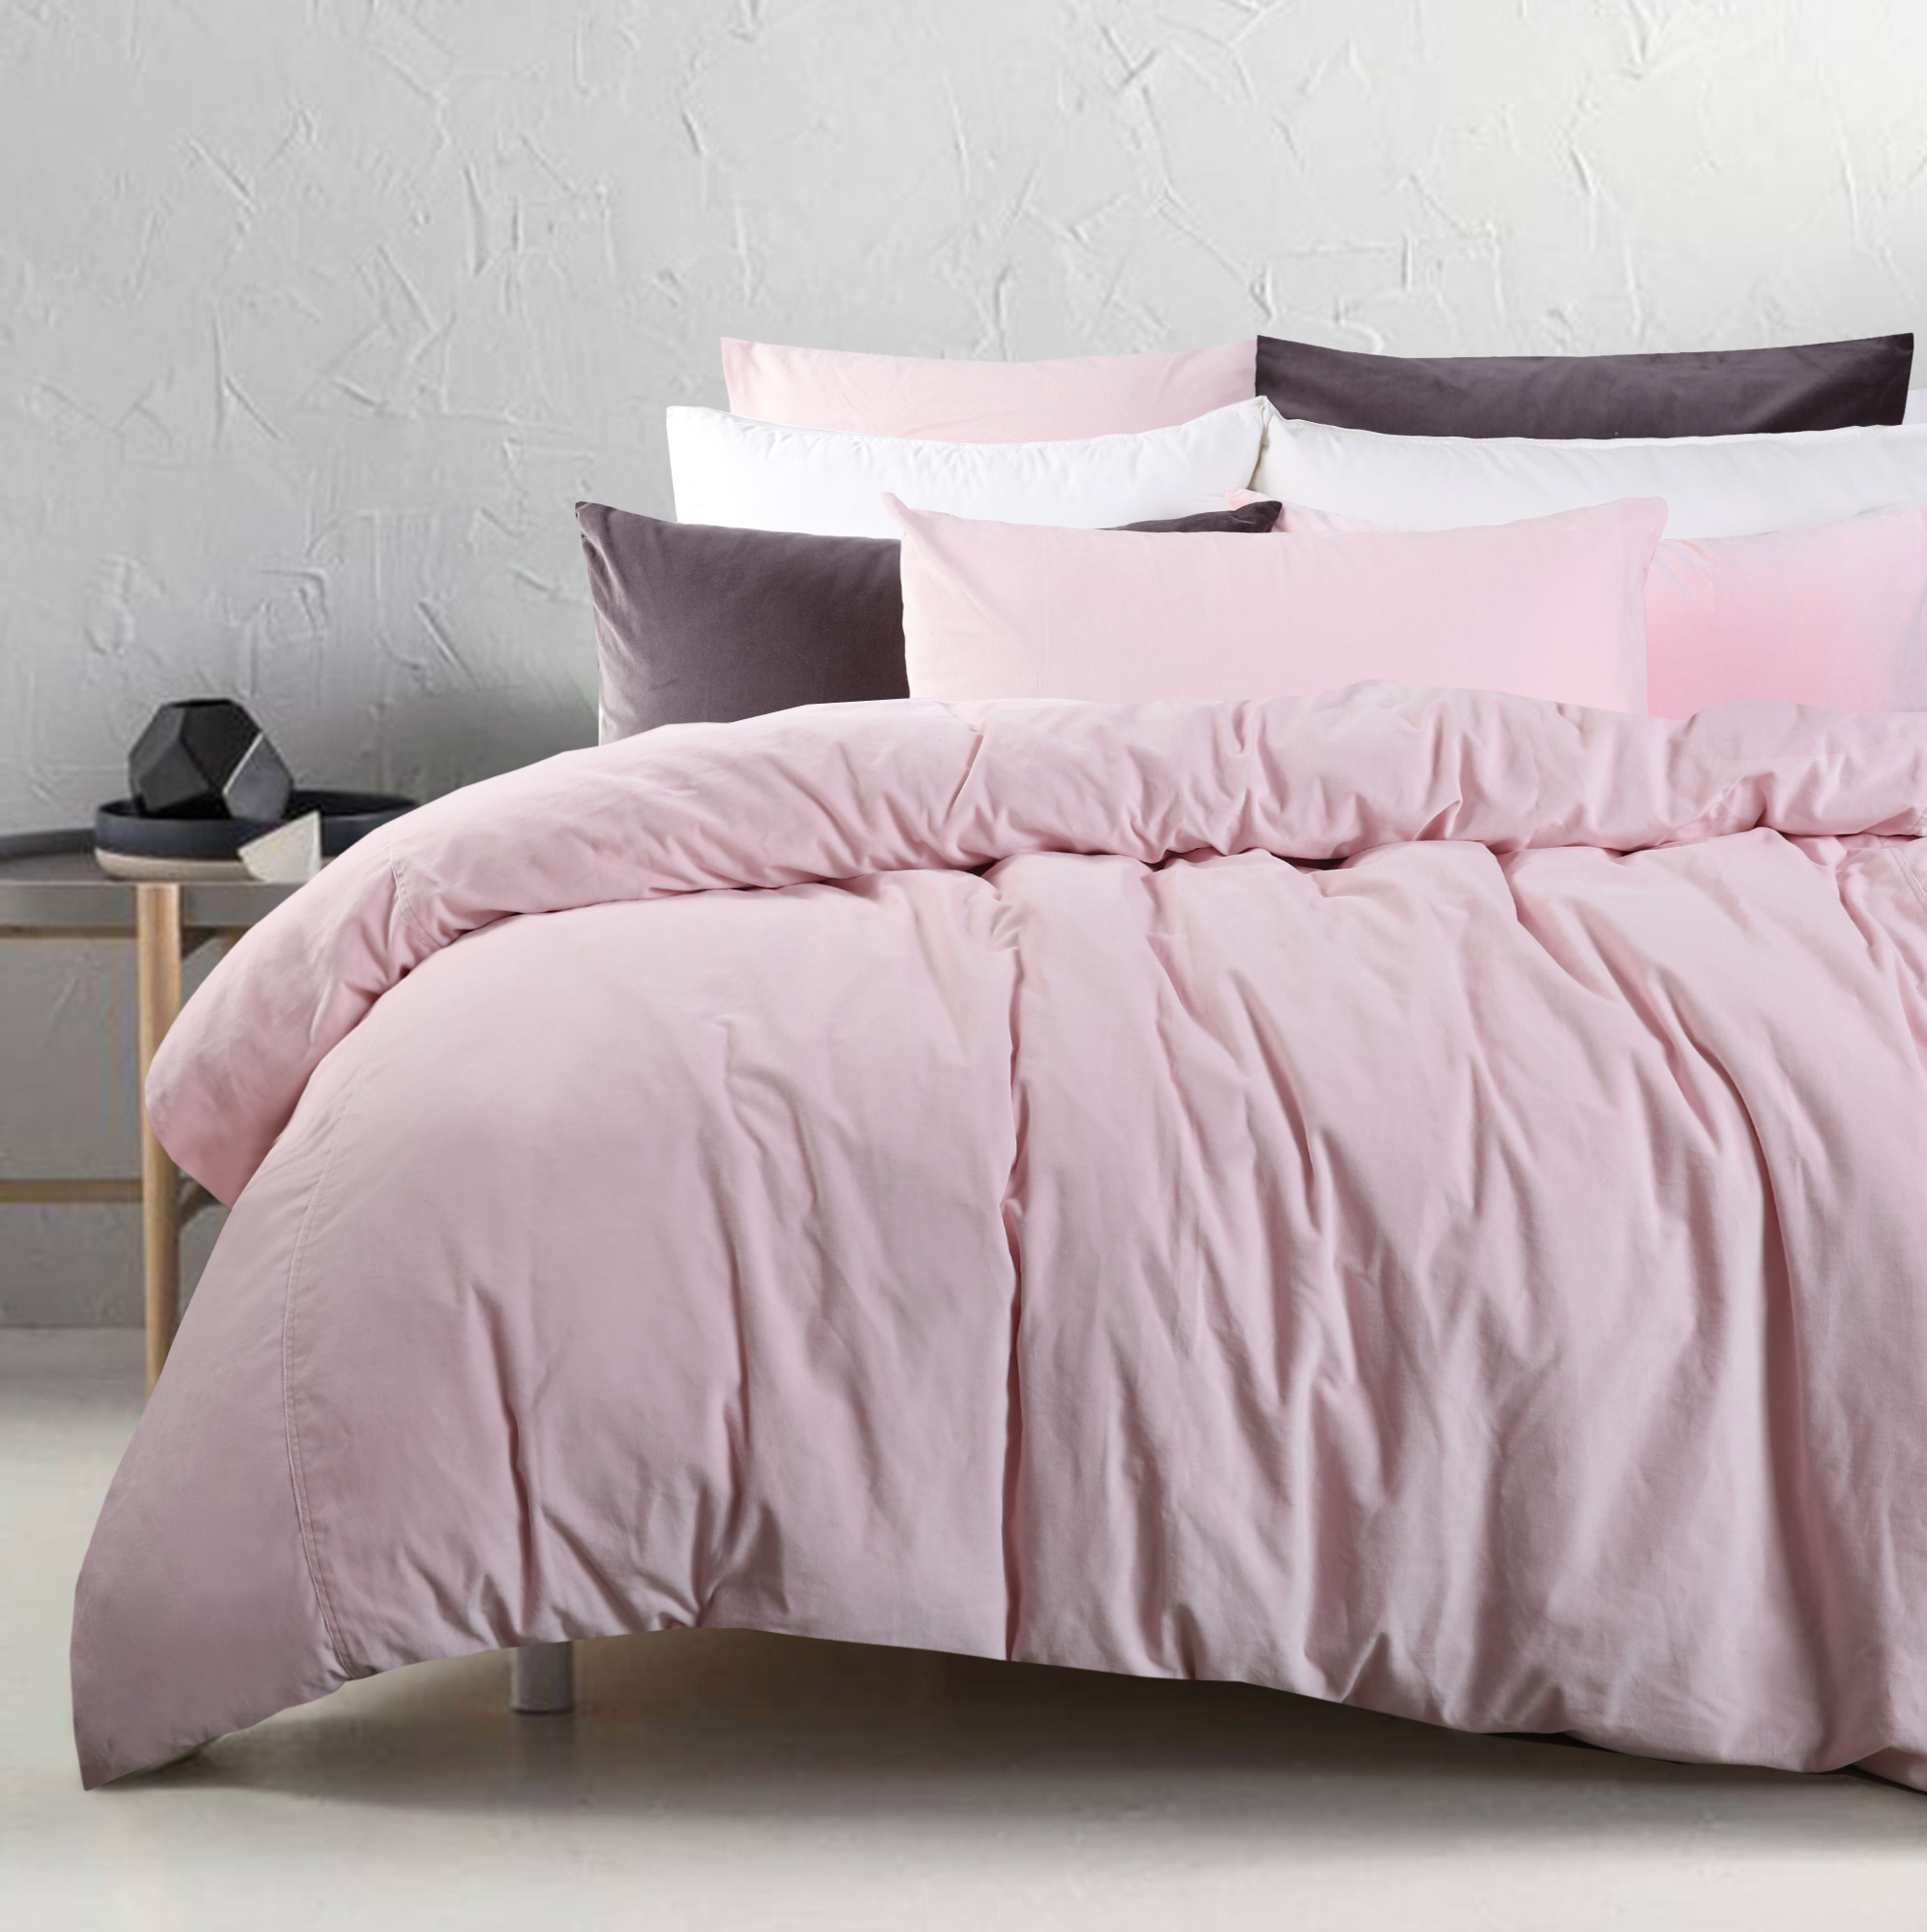 Blush Pink Quilt Cover Blush Cotton Velvet Quilt Cover Set